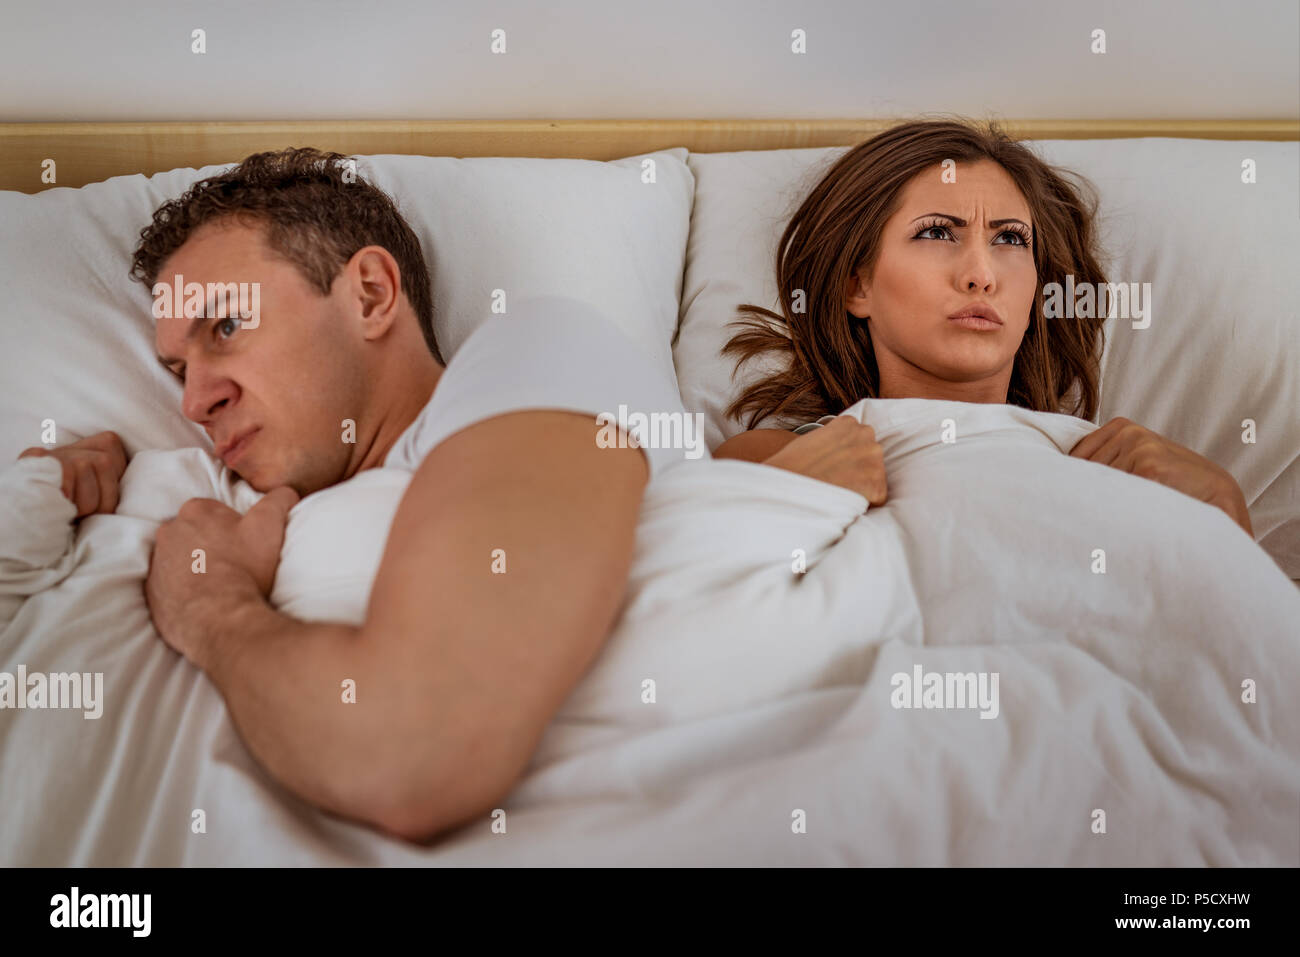 Young couple laying in bed with an expression of anger and displeased on their faces. - Stock Image